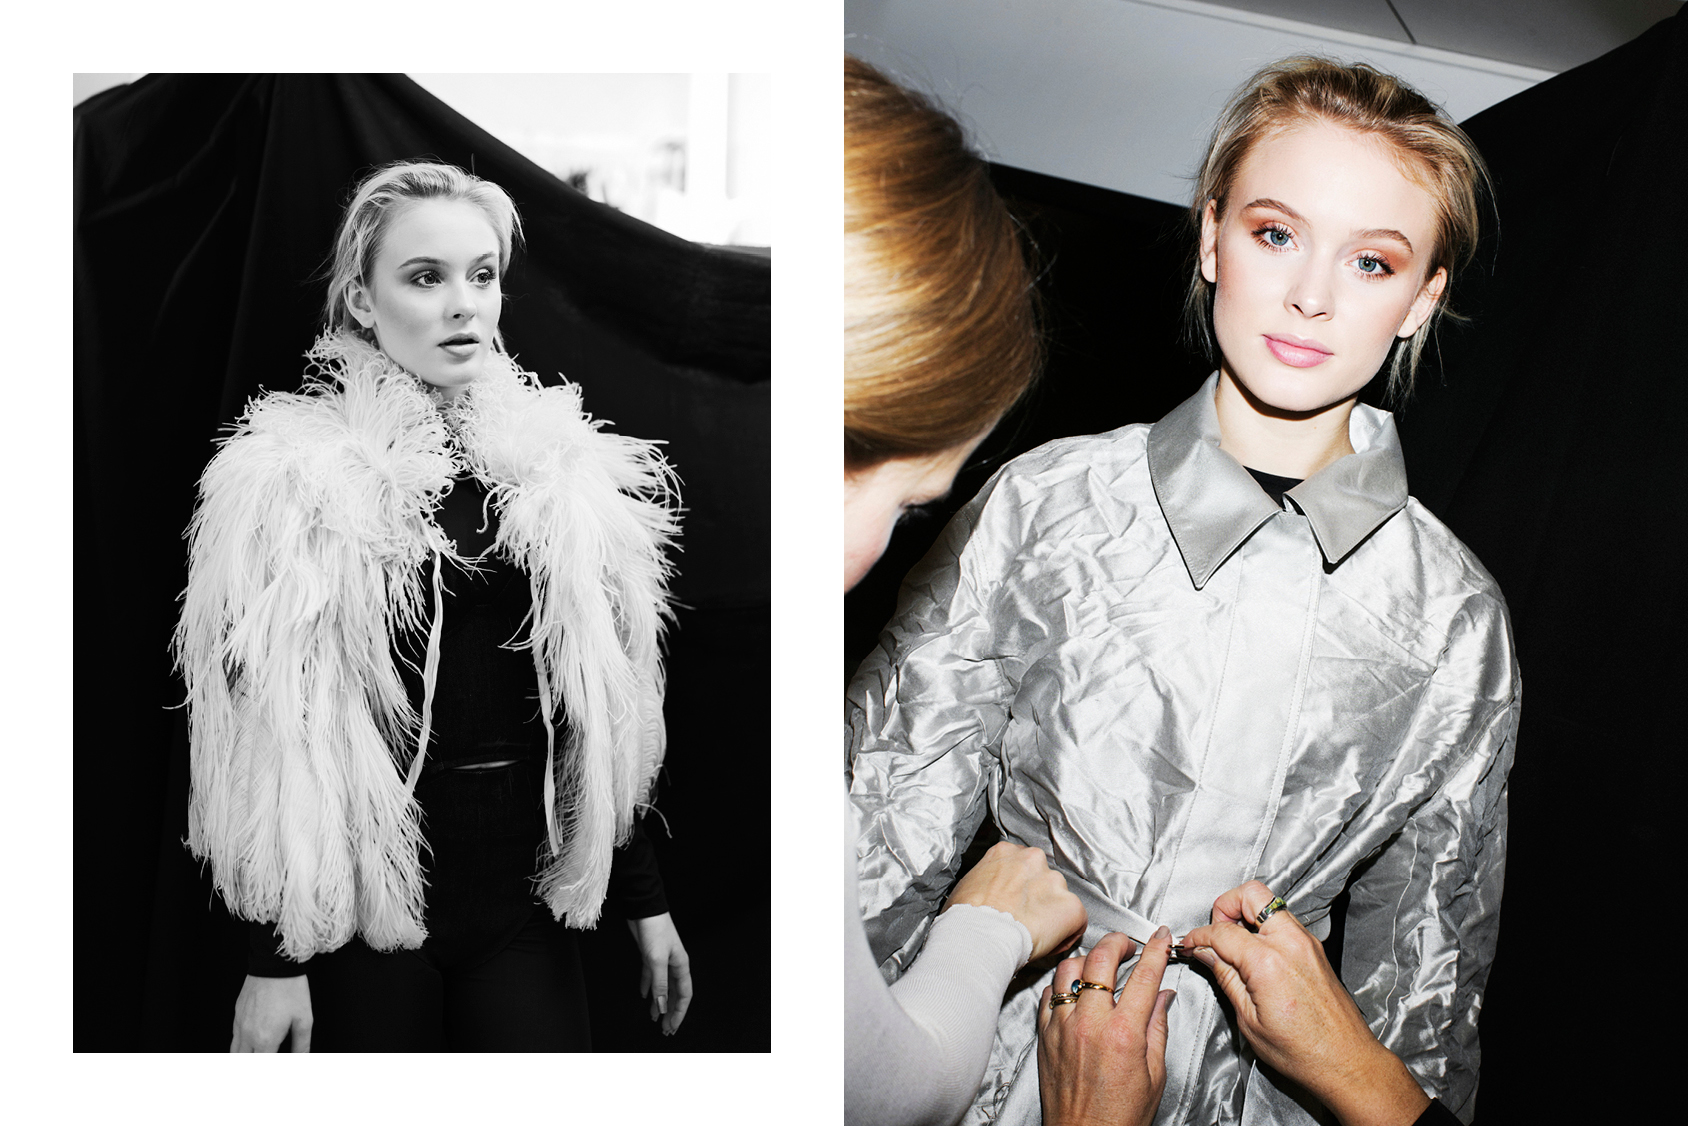 H And M Nl Zara Larsson Designs Collection With H Andm H Andm Nl